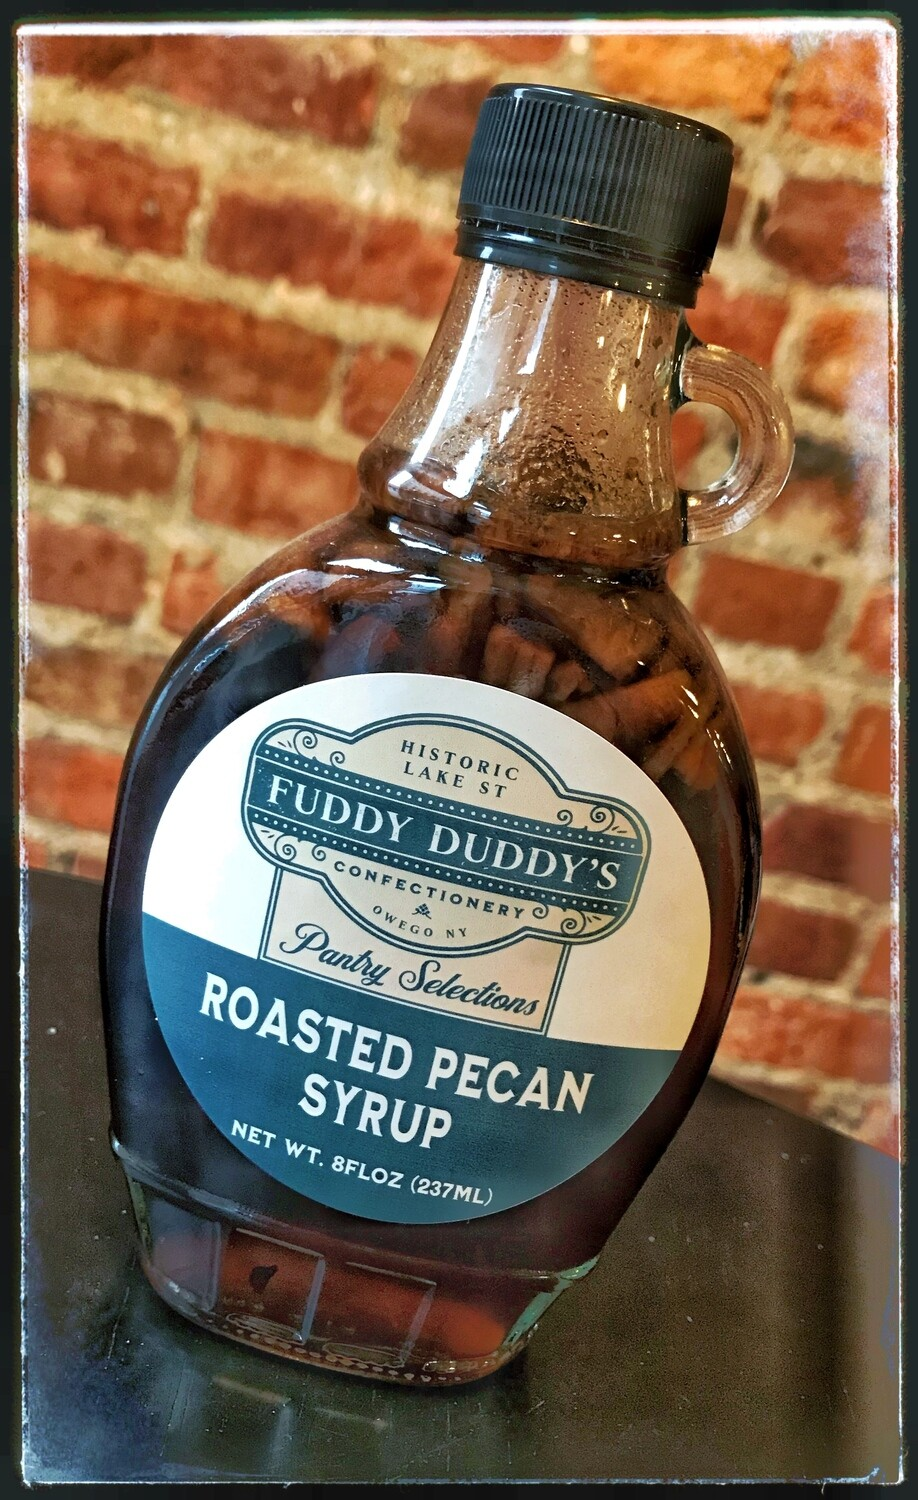 Fuddy Duddy's Roasted Pecan Syrup